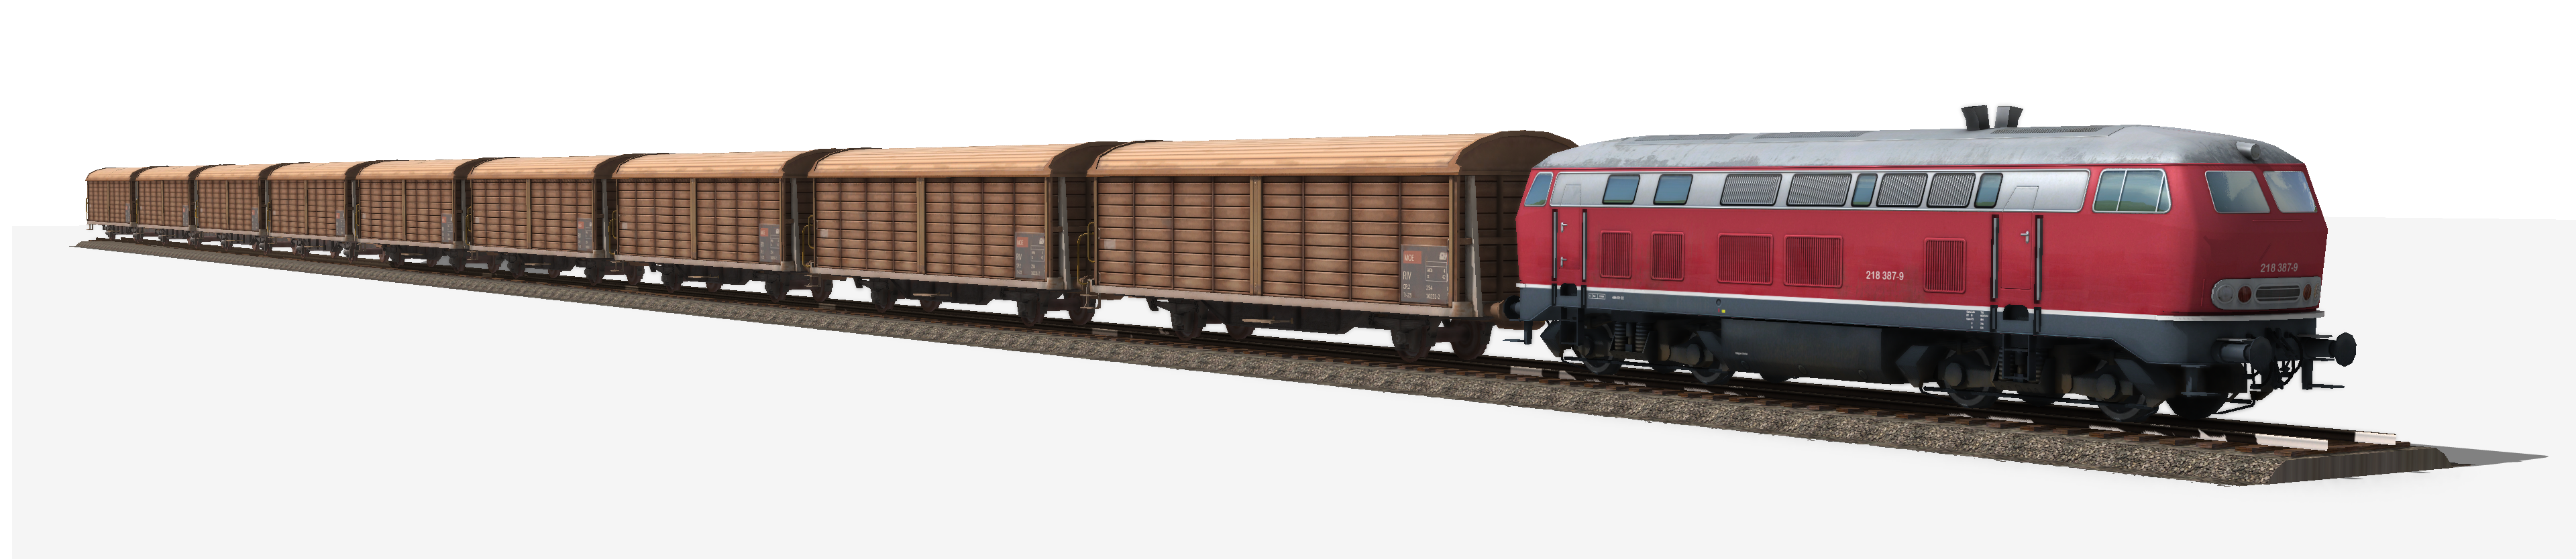 Train png images free. Track clipart railway indian track